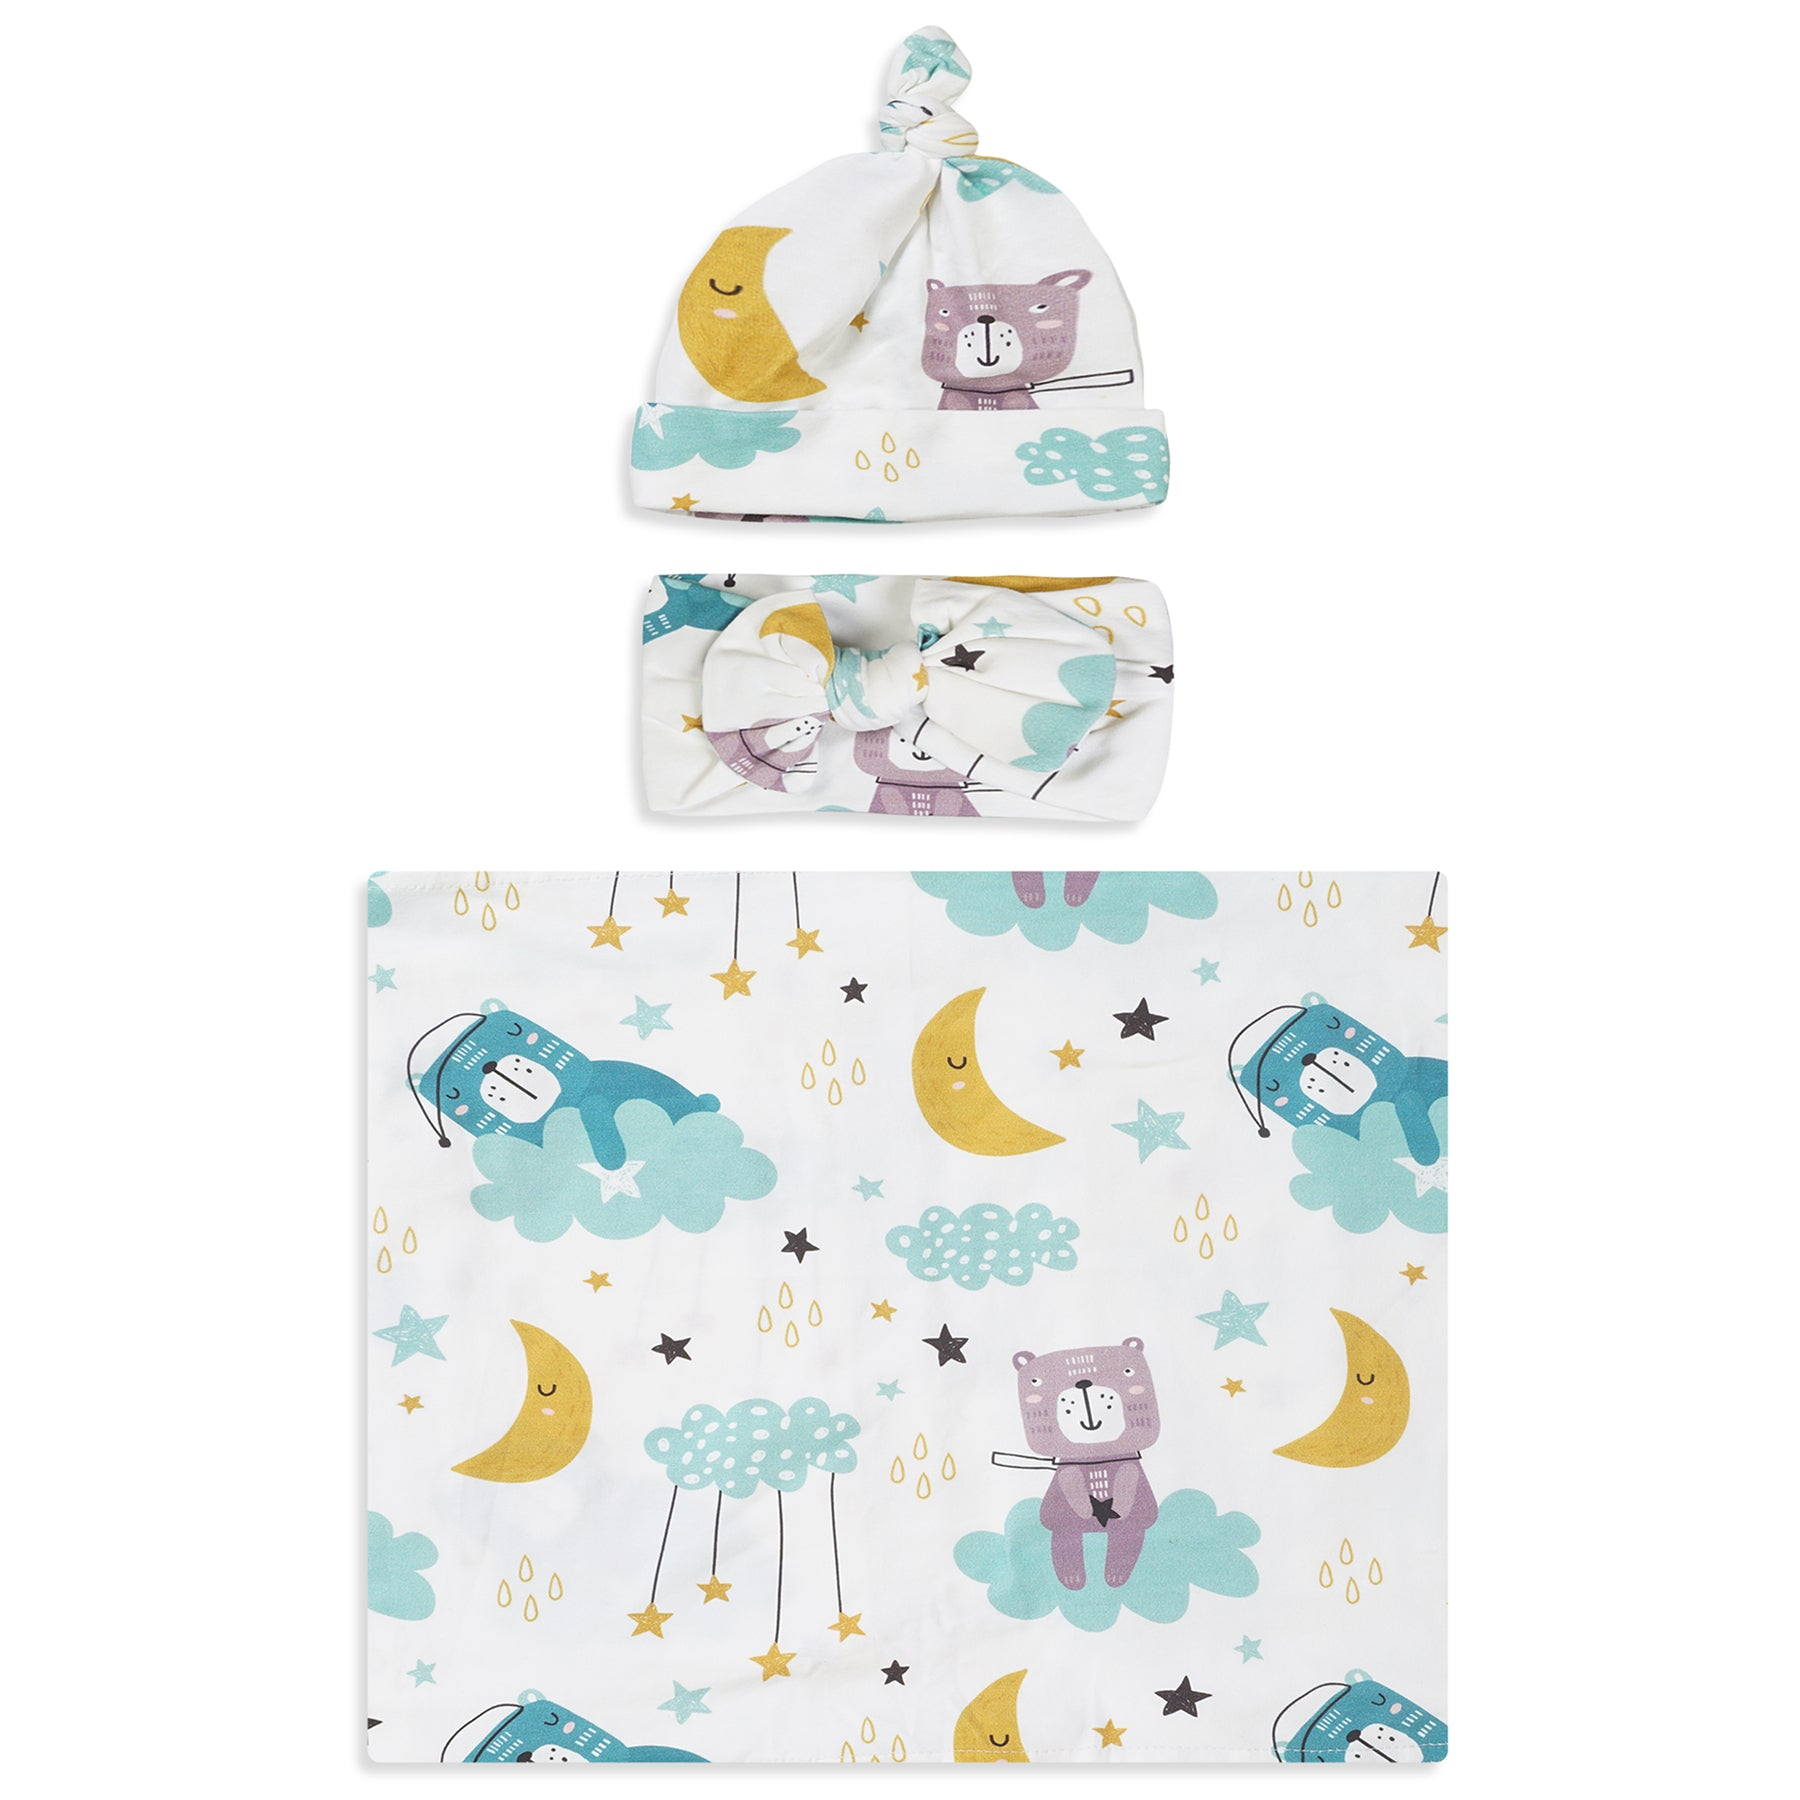 Sleepy Bear Printed Swaddle Set For Newborn Baby Boy And Girl With Organic Maternity Robe | Comfy Mommy